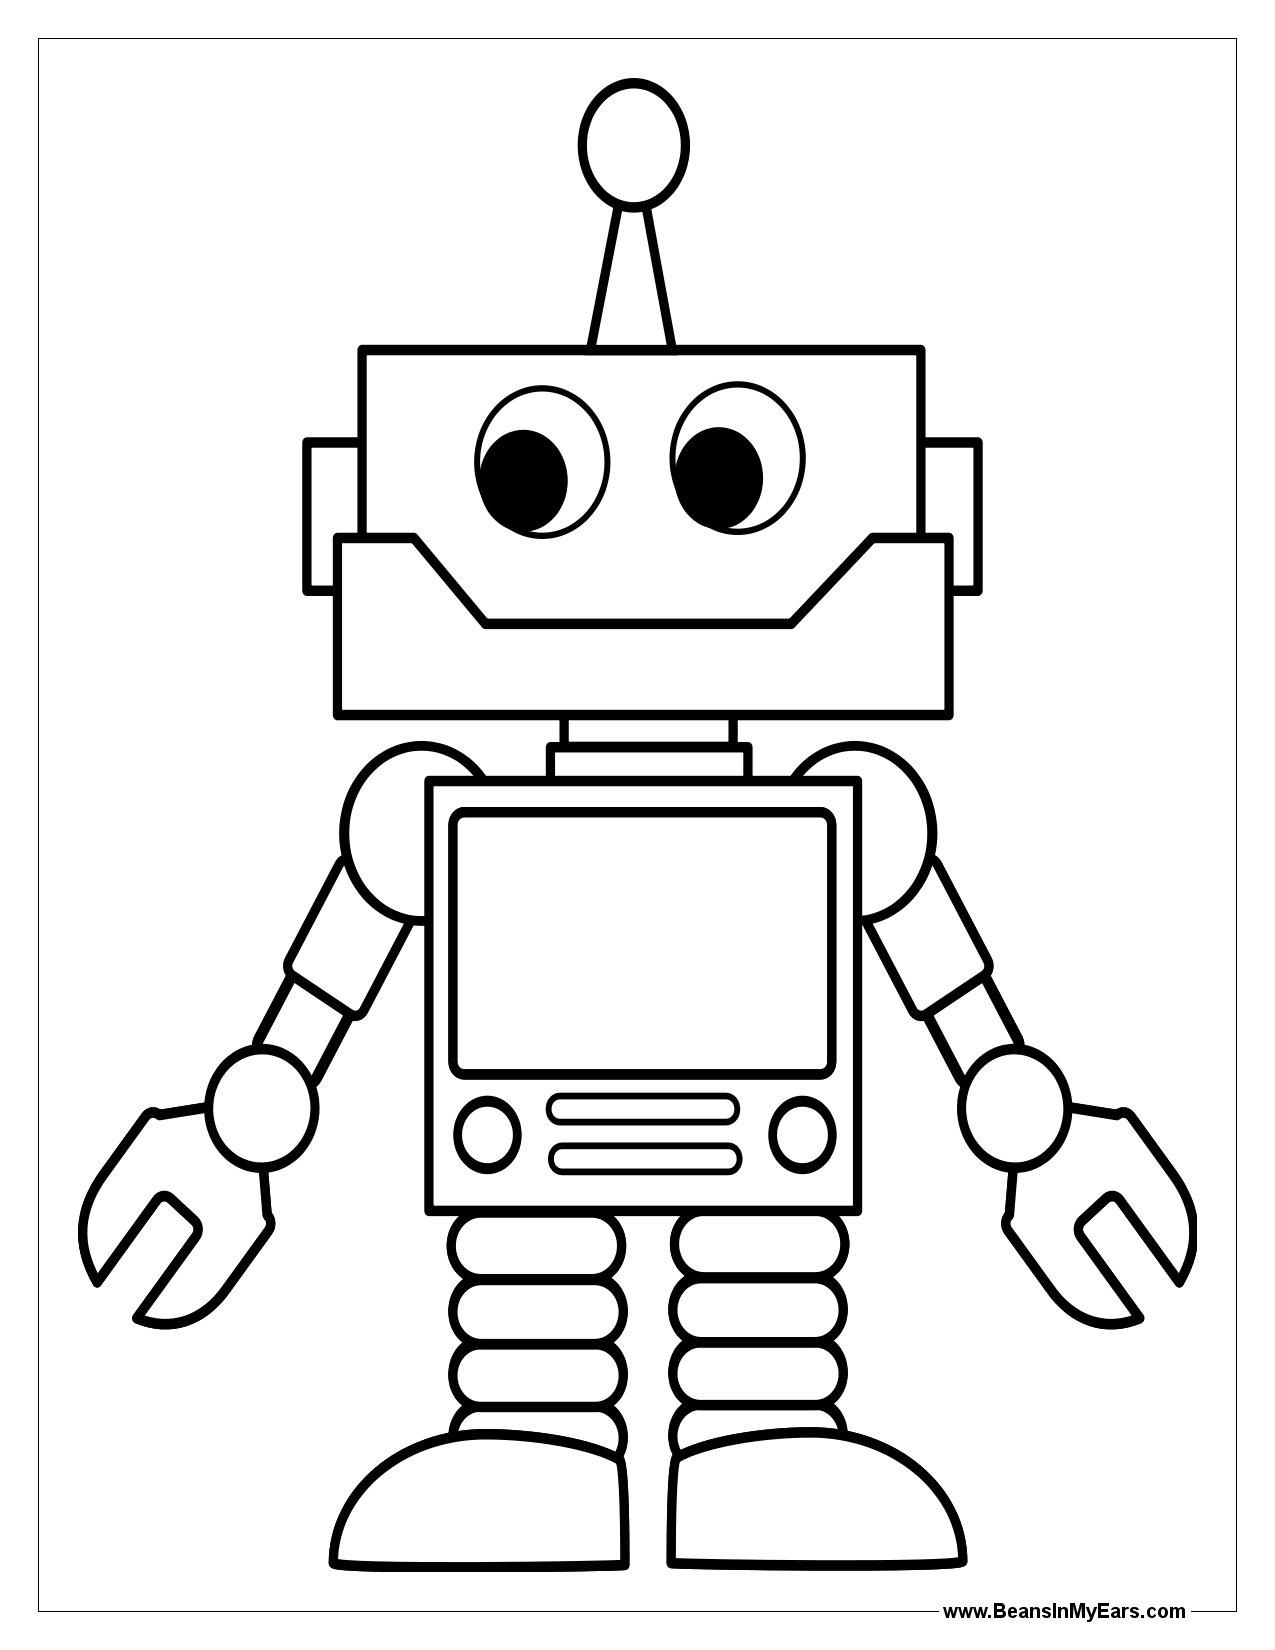 robot coloring picture free printable robot coloring pages for kids cool2bkids picture coloring robot